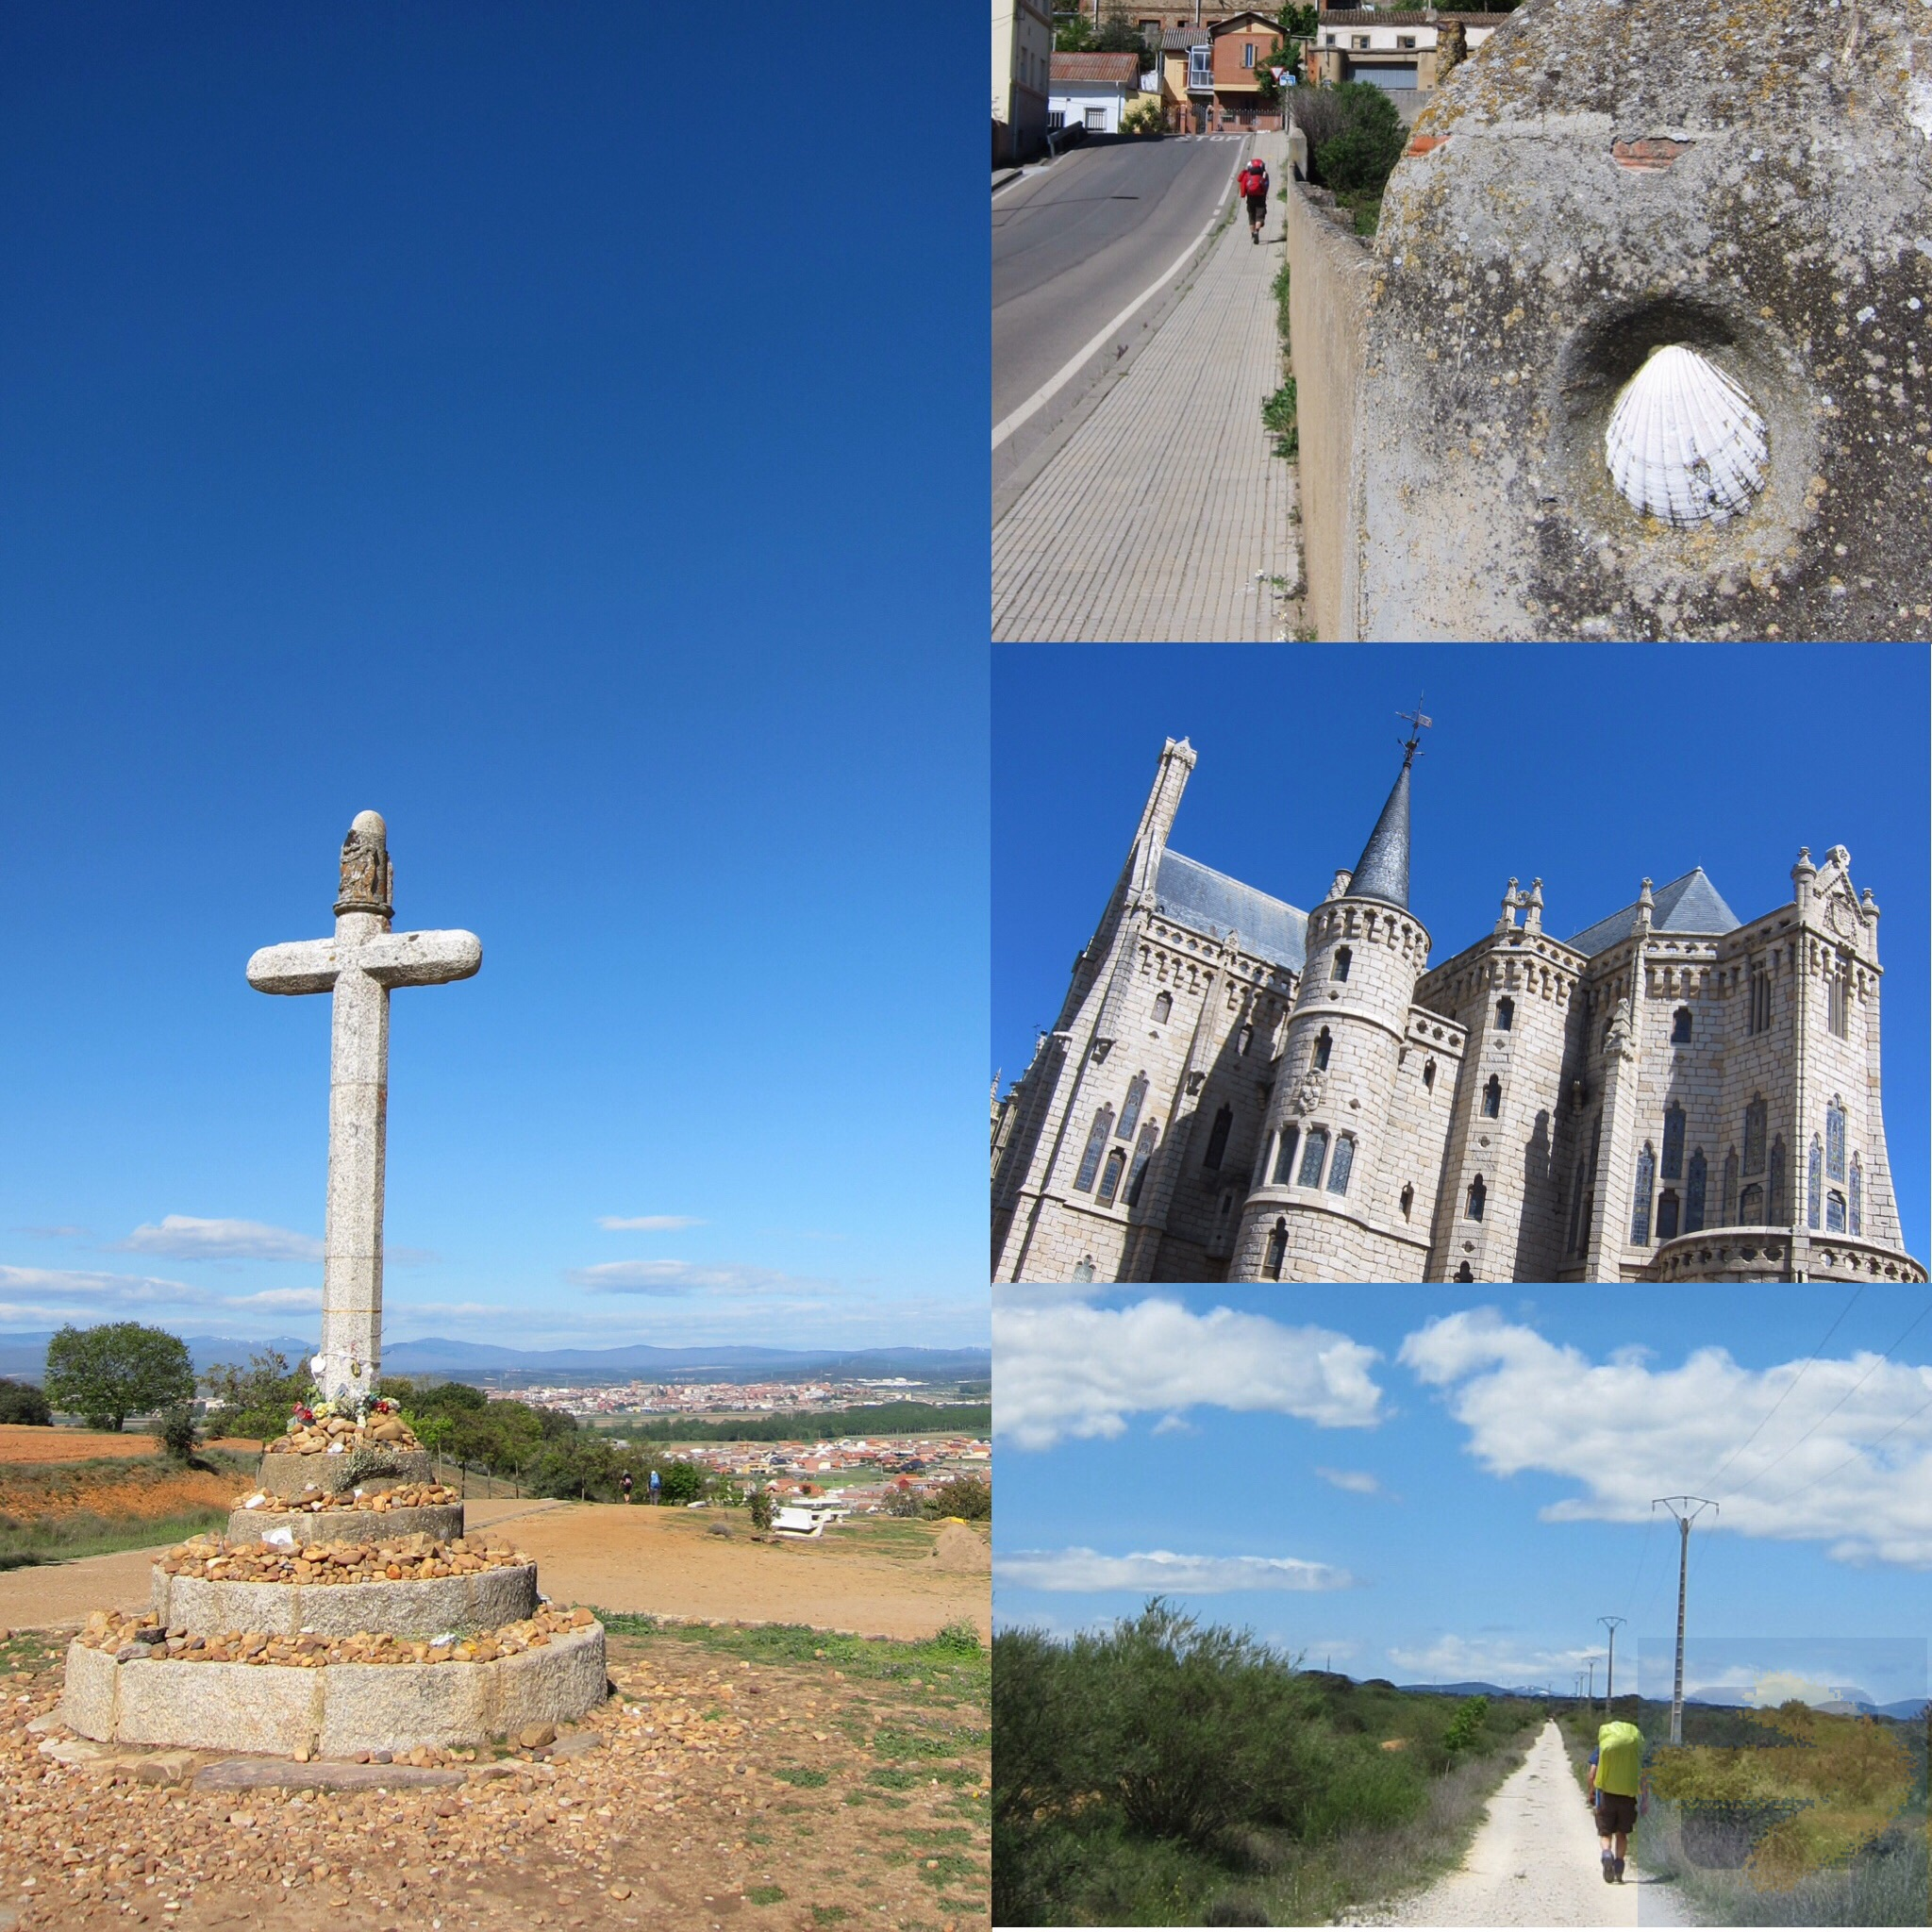 Arriving at and passing Astorga